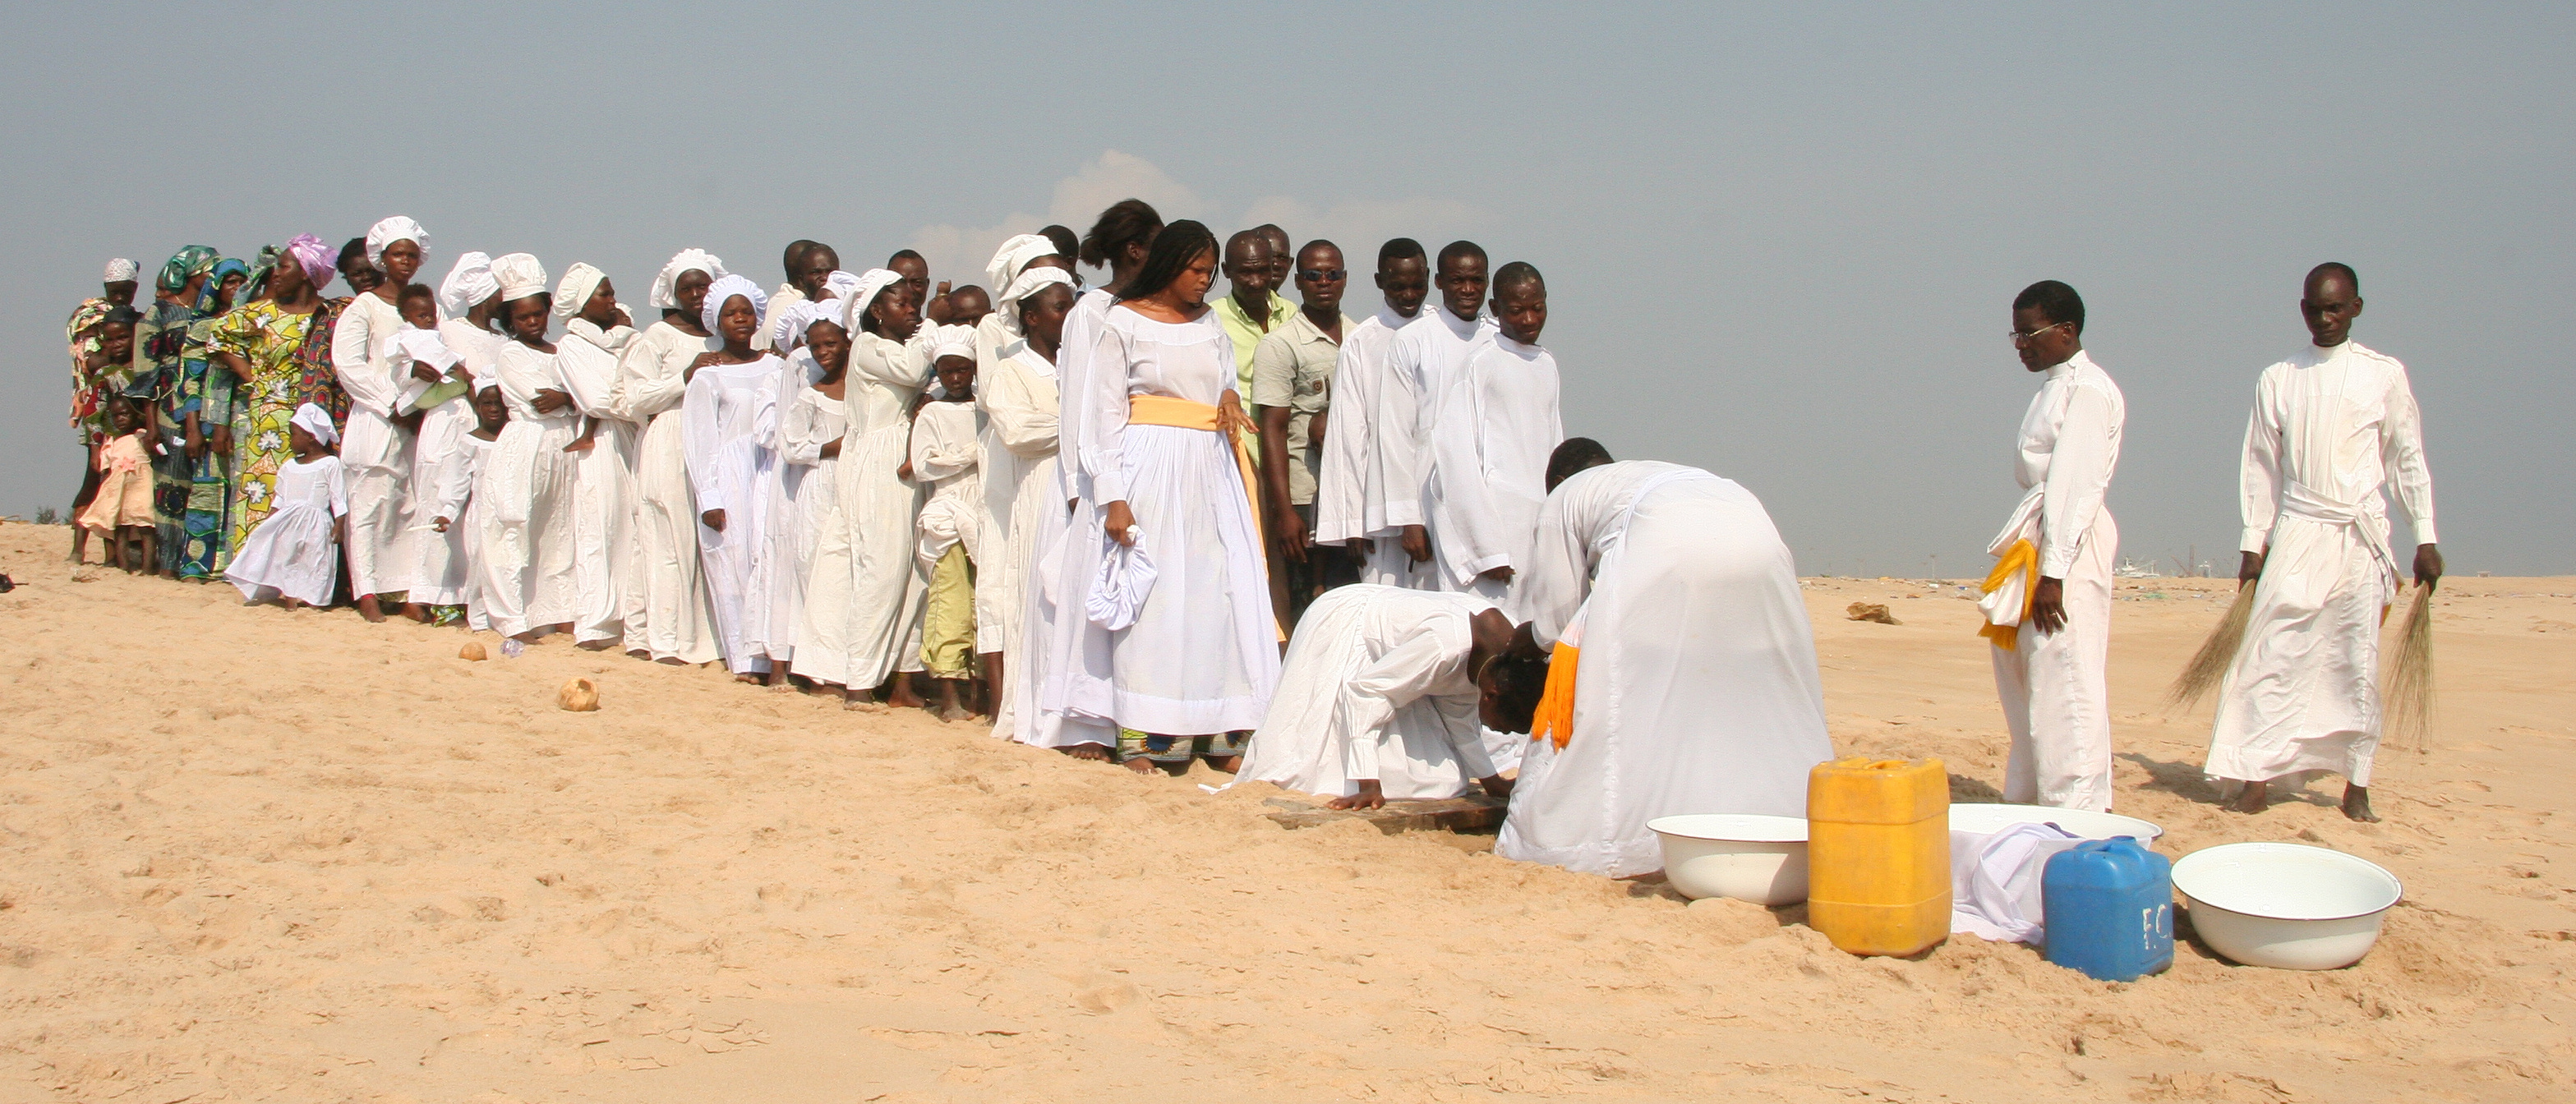 Migrants from Africa, Asia, Revitalizing Christianity in Europe